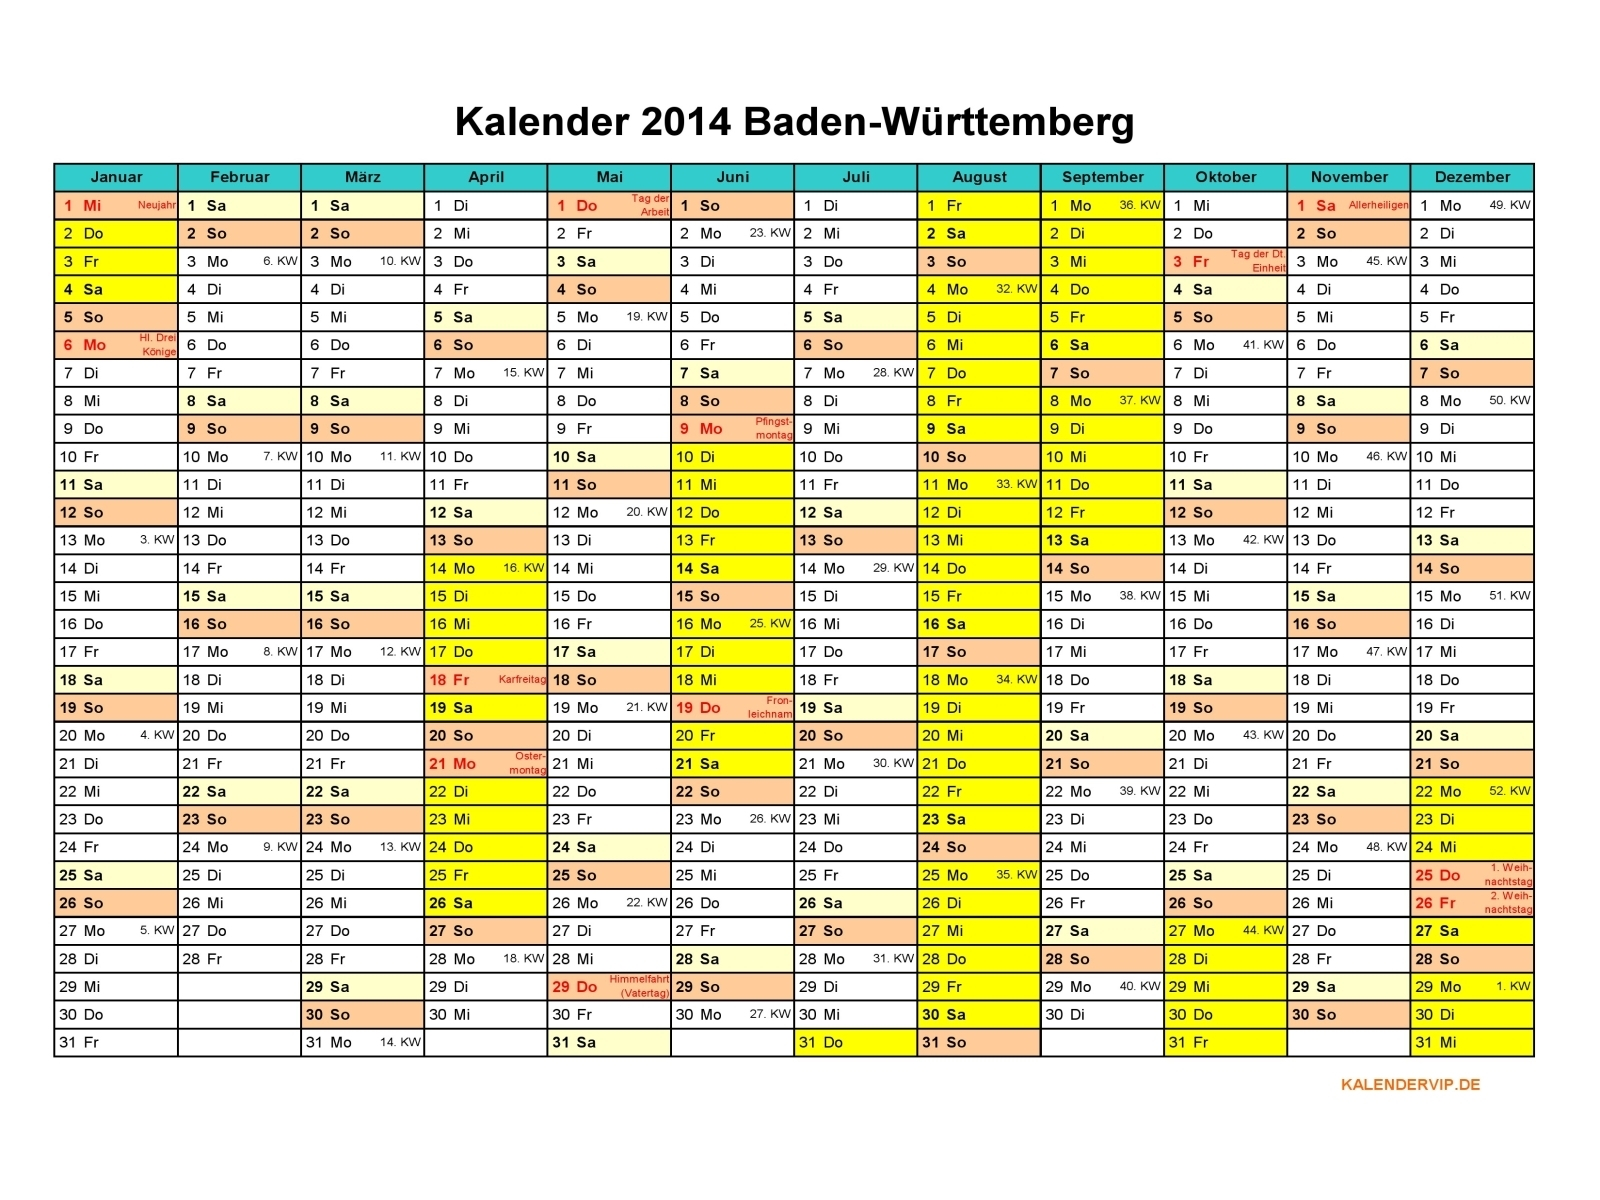 kalender 2014 baden w rttemberg kalendervip. Black Bedroom Furniture Sets. Home Design Ideas